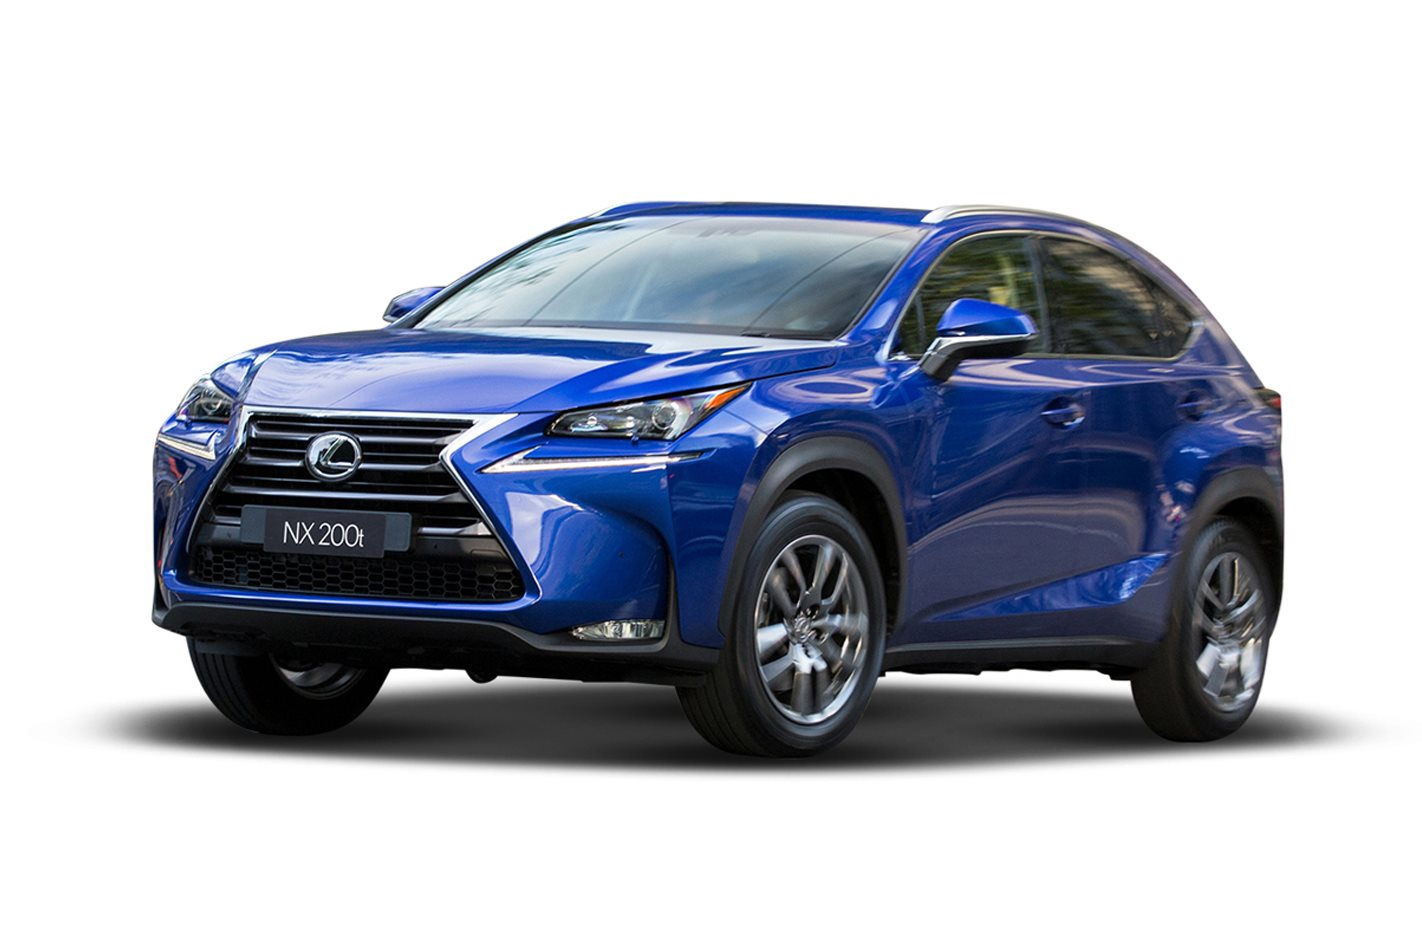 lexus magazine f nx automobile profile joseph t side sport details news capparella revealed and